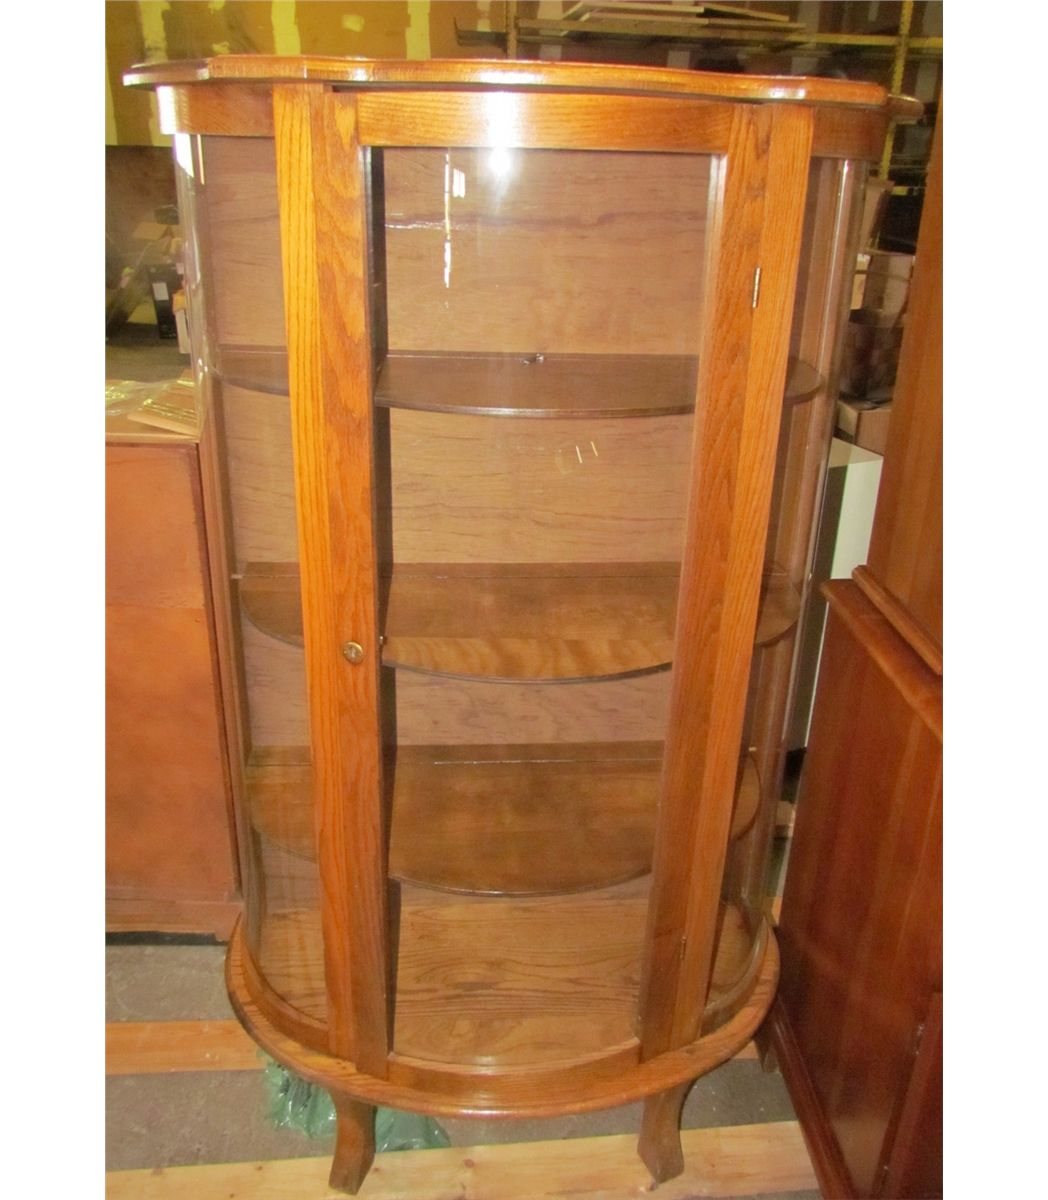 Antique Cherry Wooden Curio Cabinet with Glass Doors and